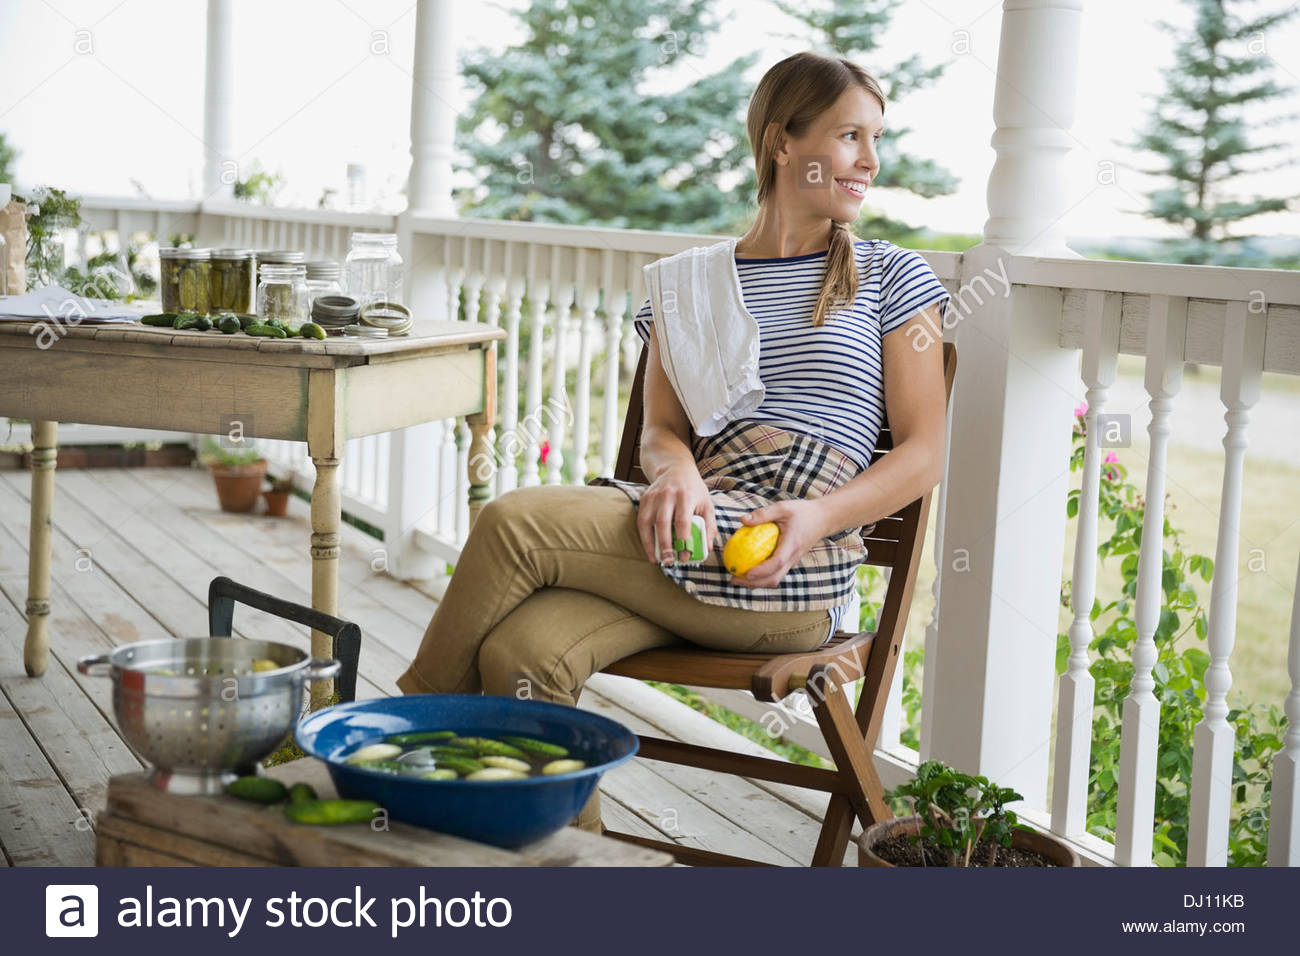 Young woman washing vegetables on porch - Stock Image